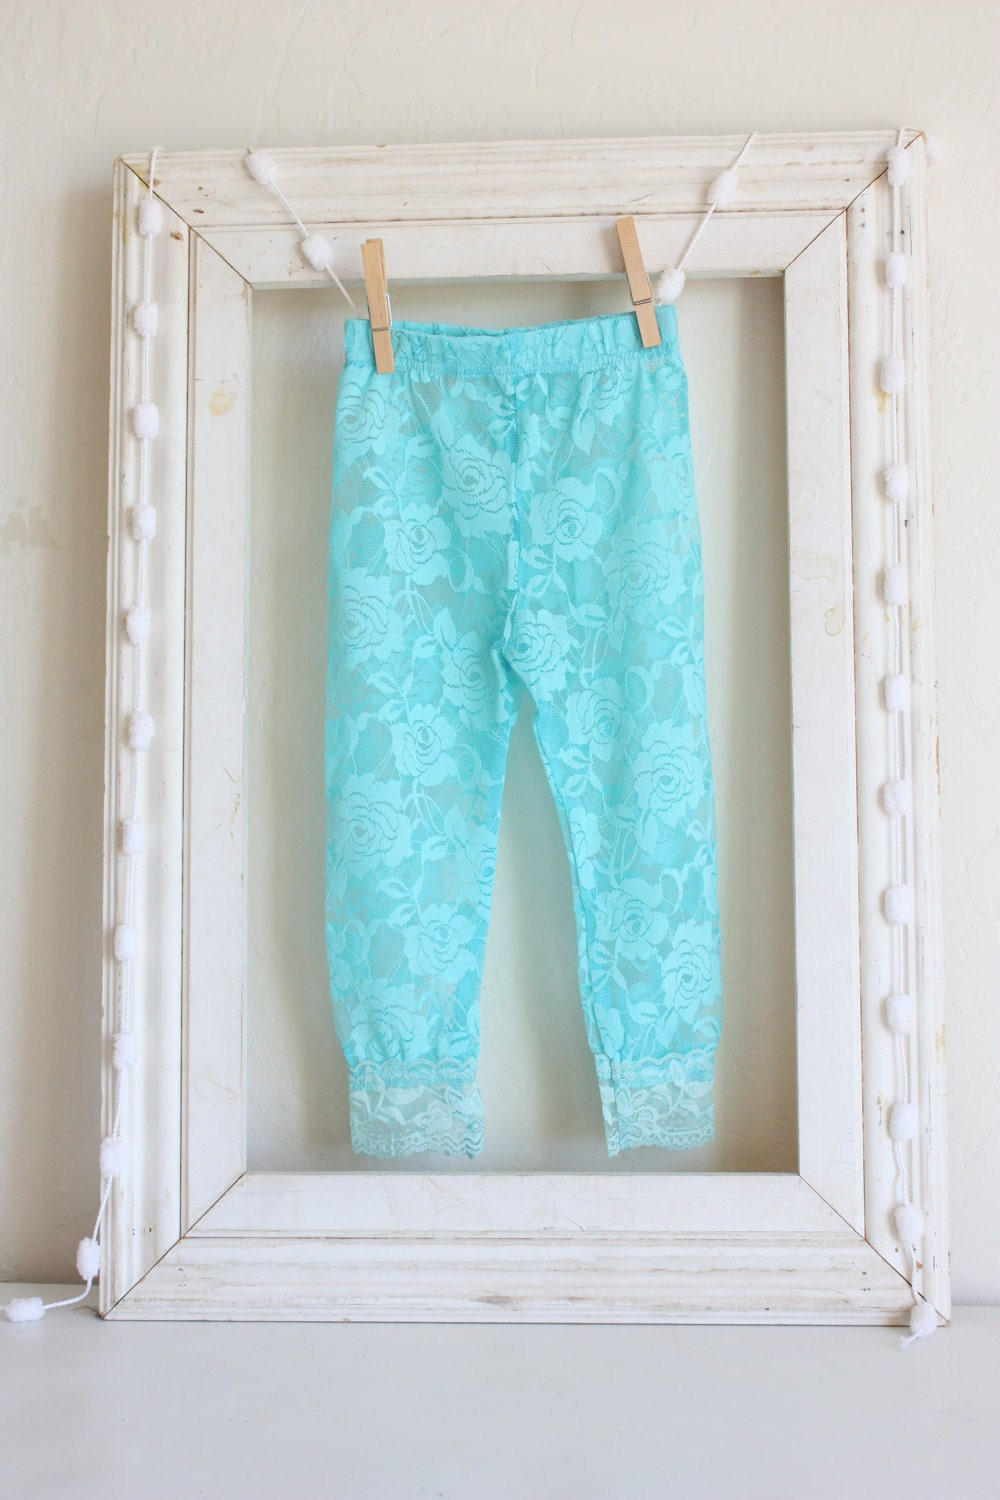 Items similar to Leggings Baby Lace Leggings Auqa on Etsy